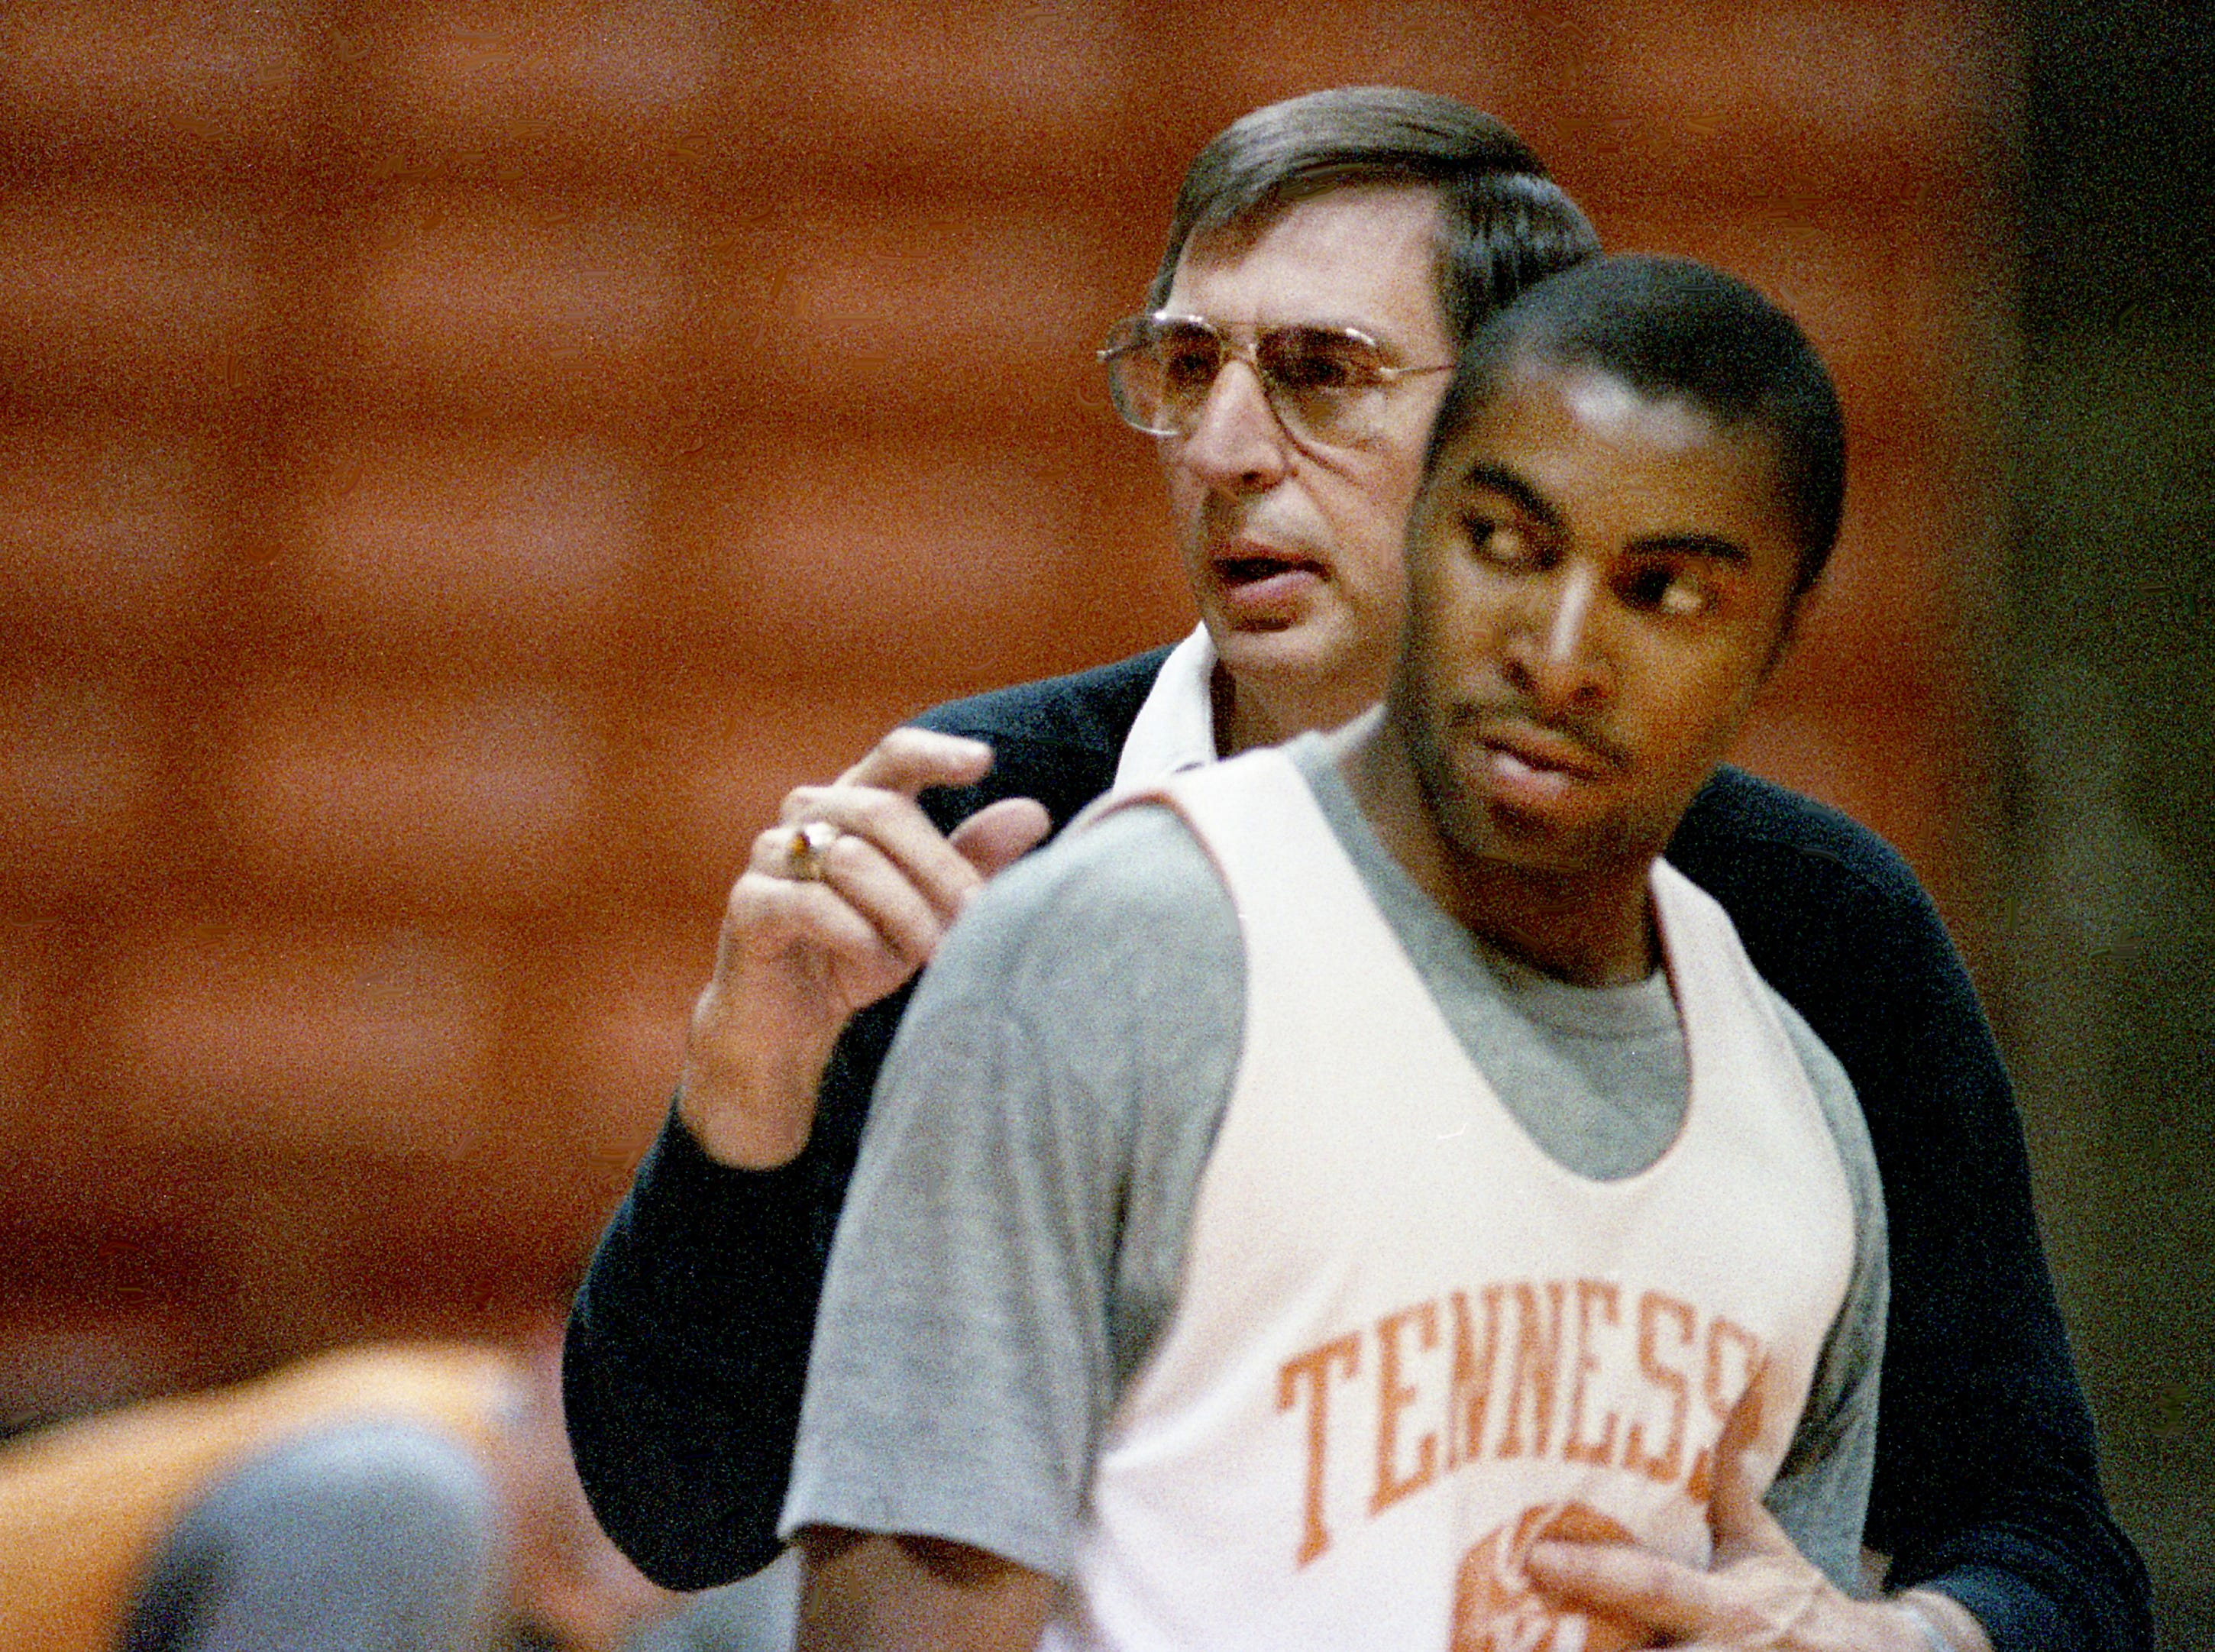 Tennessee head coach Don DeVoe positions junior guard Ron Taylor during practice on their own floor of Thompson-Boling Arena in Knoxville on March 9, 1989, for their showdown against LSU the next day in the SEC Tournament.